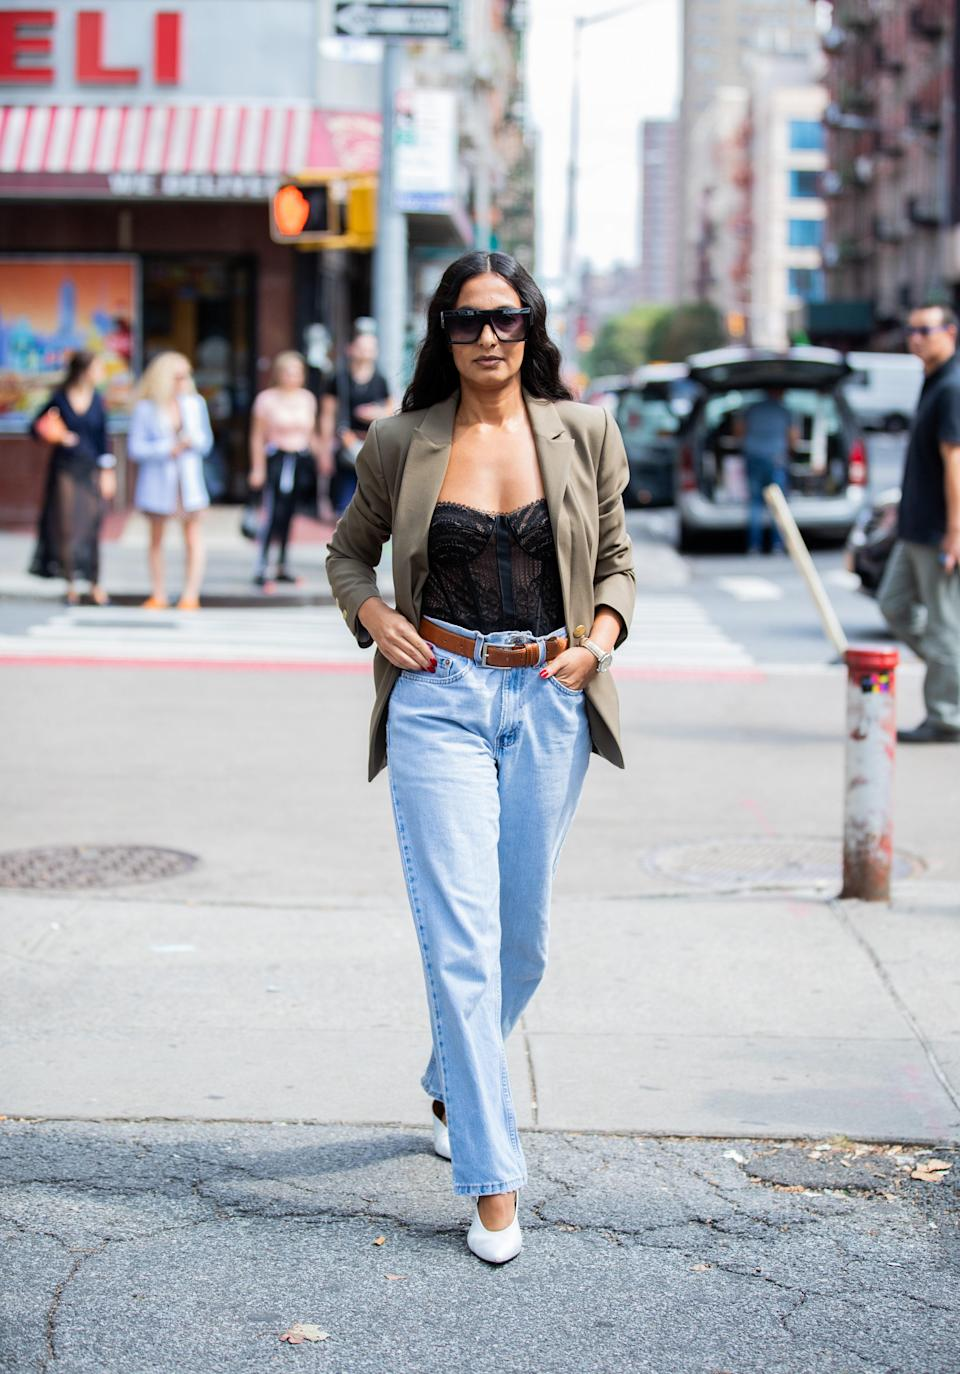 """Sweatpants are great and all, but <a href=""""https://www.glamour.com/gallery/best-jeans-for-women?mbid=synd_yahoo_rss"""" rel=""""nofollow noopener"""" target=""""_blank"""" data-ylk=""""slk:denim"""" class=""""link rapid-noclick-resp"""">denim</a> is truly forever. The new classic silhouette is the easy jean—a relaxed, high-waisted straight leg that looks as chic with a pair of pumps as it does with <a href=""""https://www.glamour.com/gallery/ugly-shoes?mbid=synd_yahoo_rss"""" rel=""""nofollow noopener"""" target=""""_blank"""" data-ylk=""""slk:dad sneakers"""" class=""""link rapid-noclick-resp"""">dad sneakers</a>."""